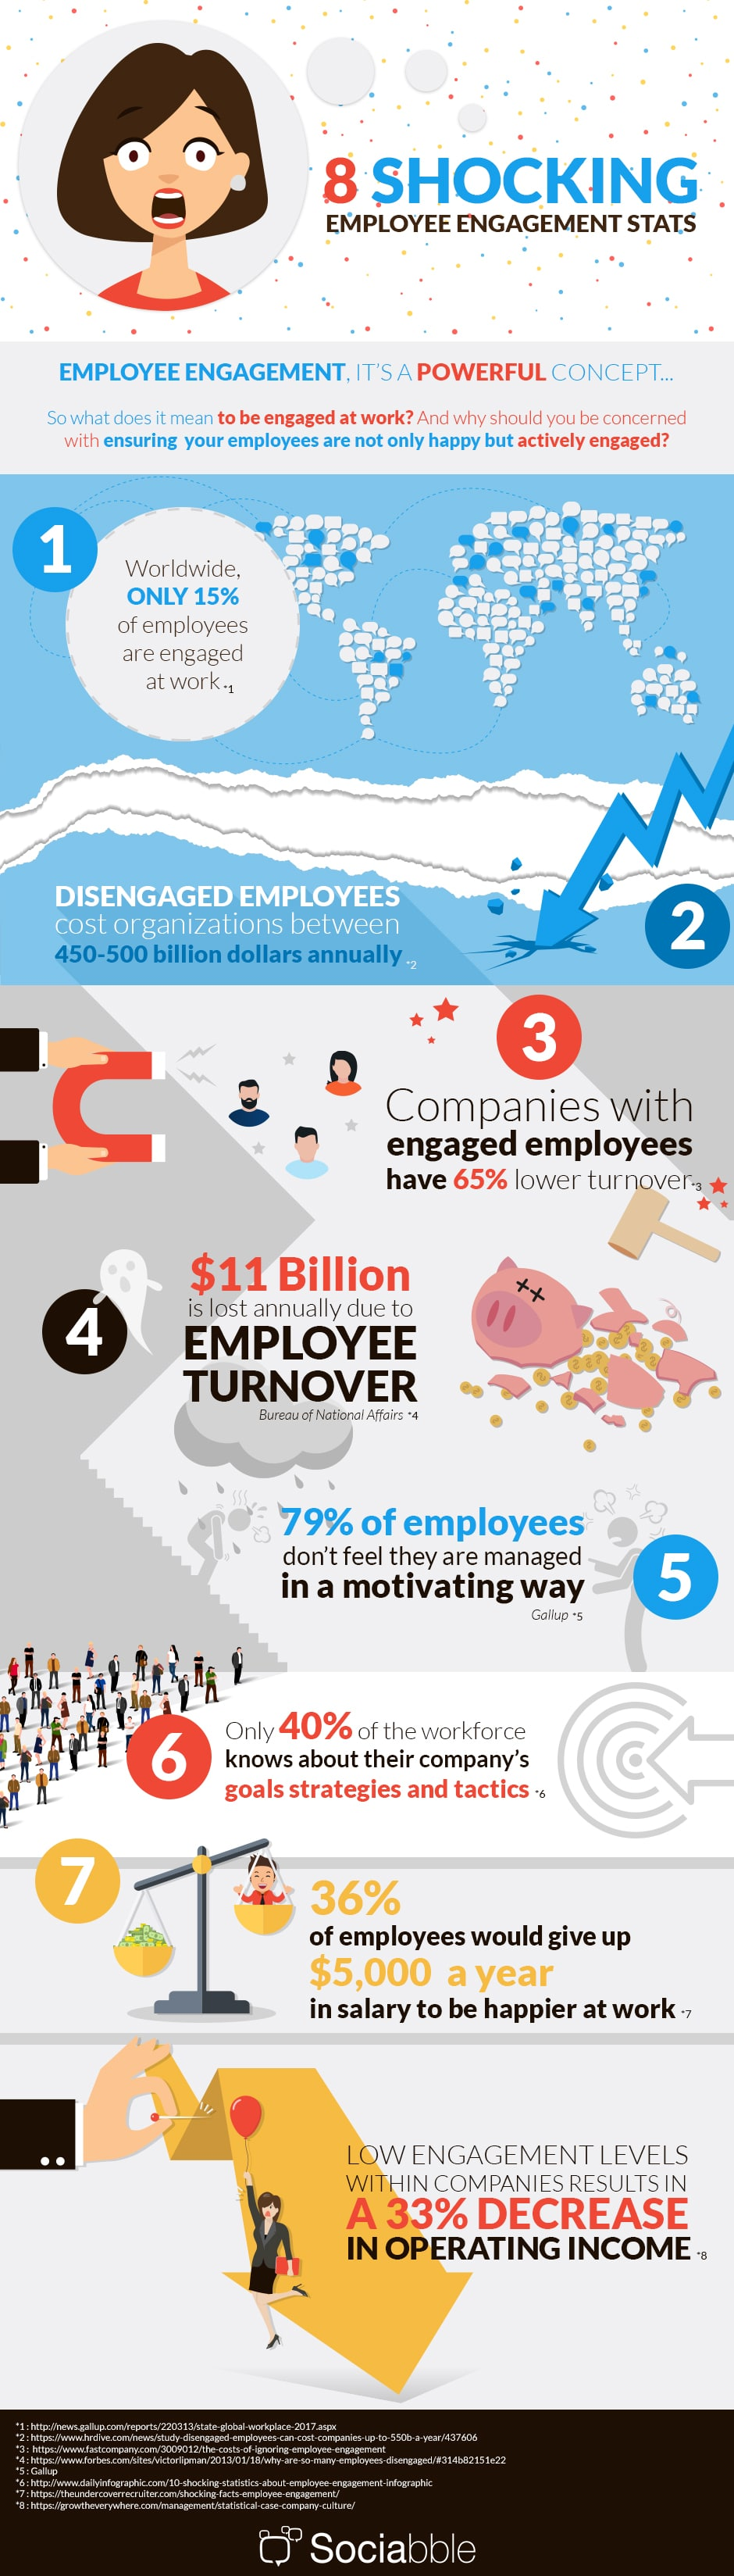 8 Shocking employee engagement stats